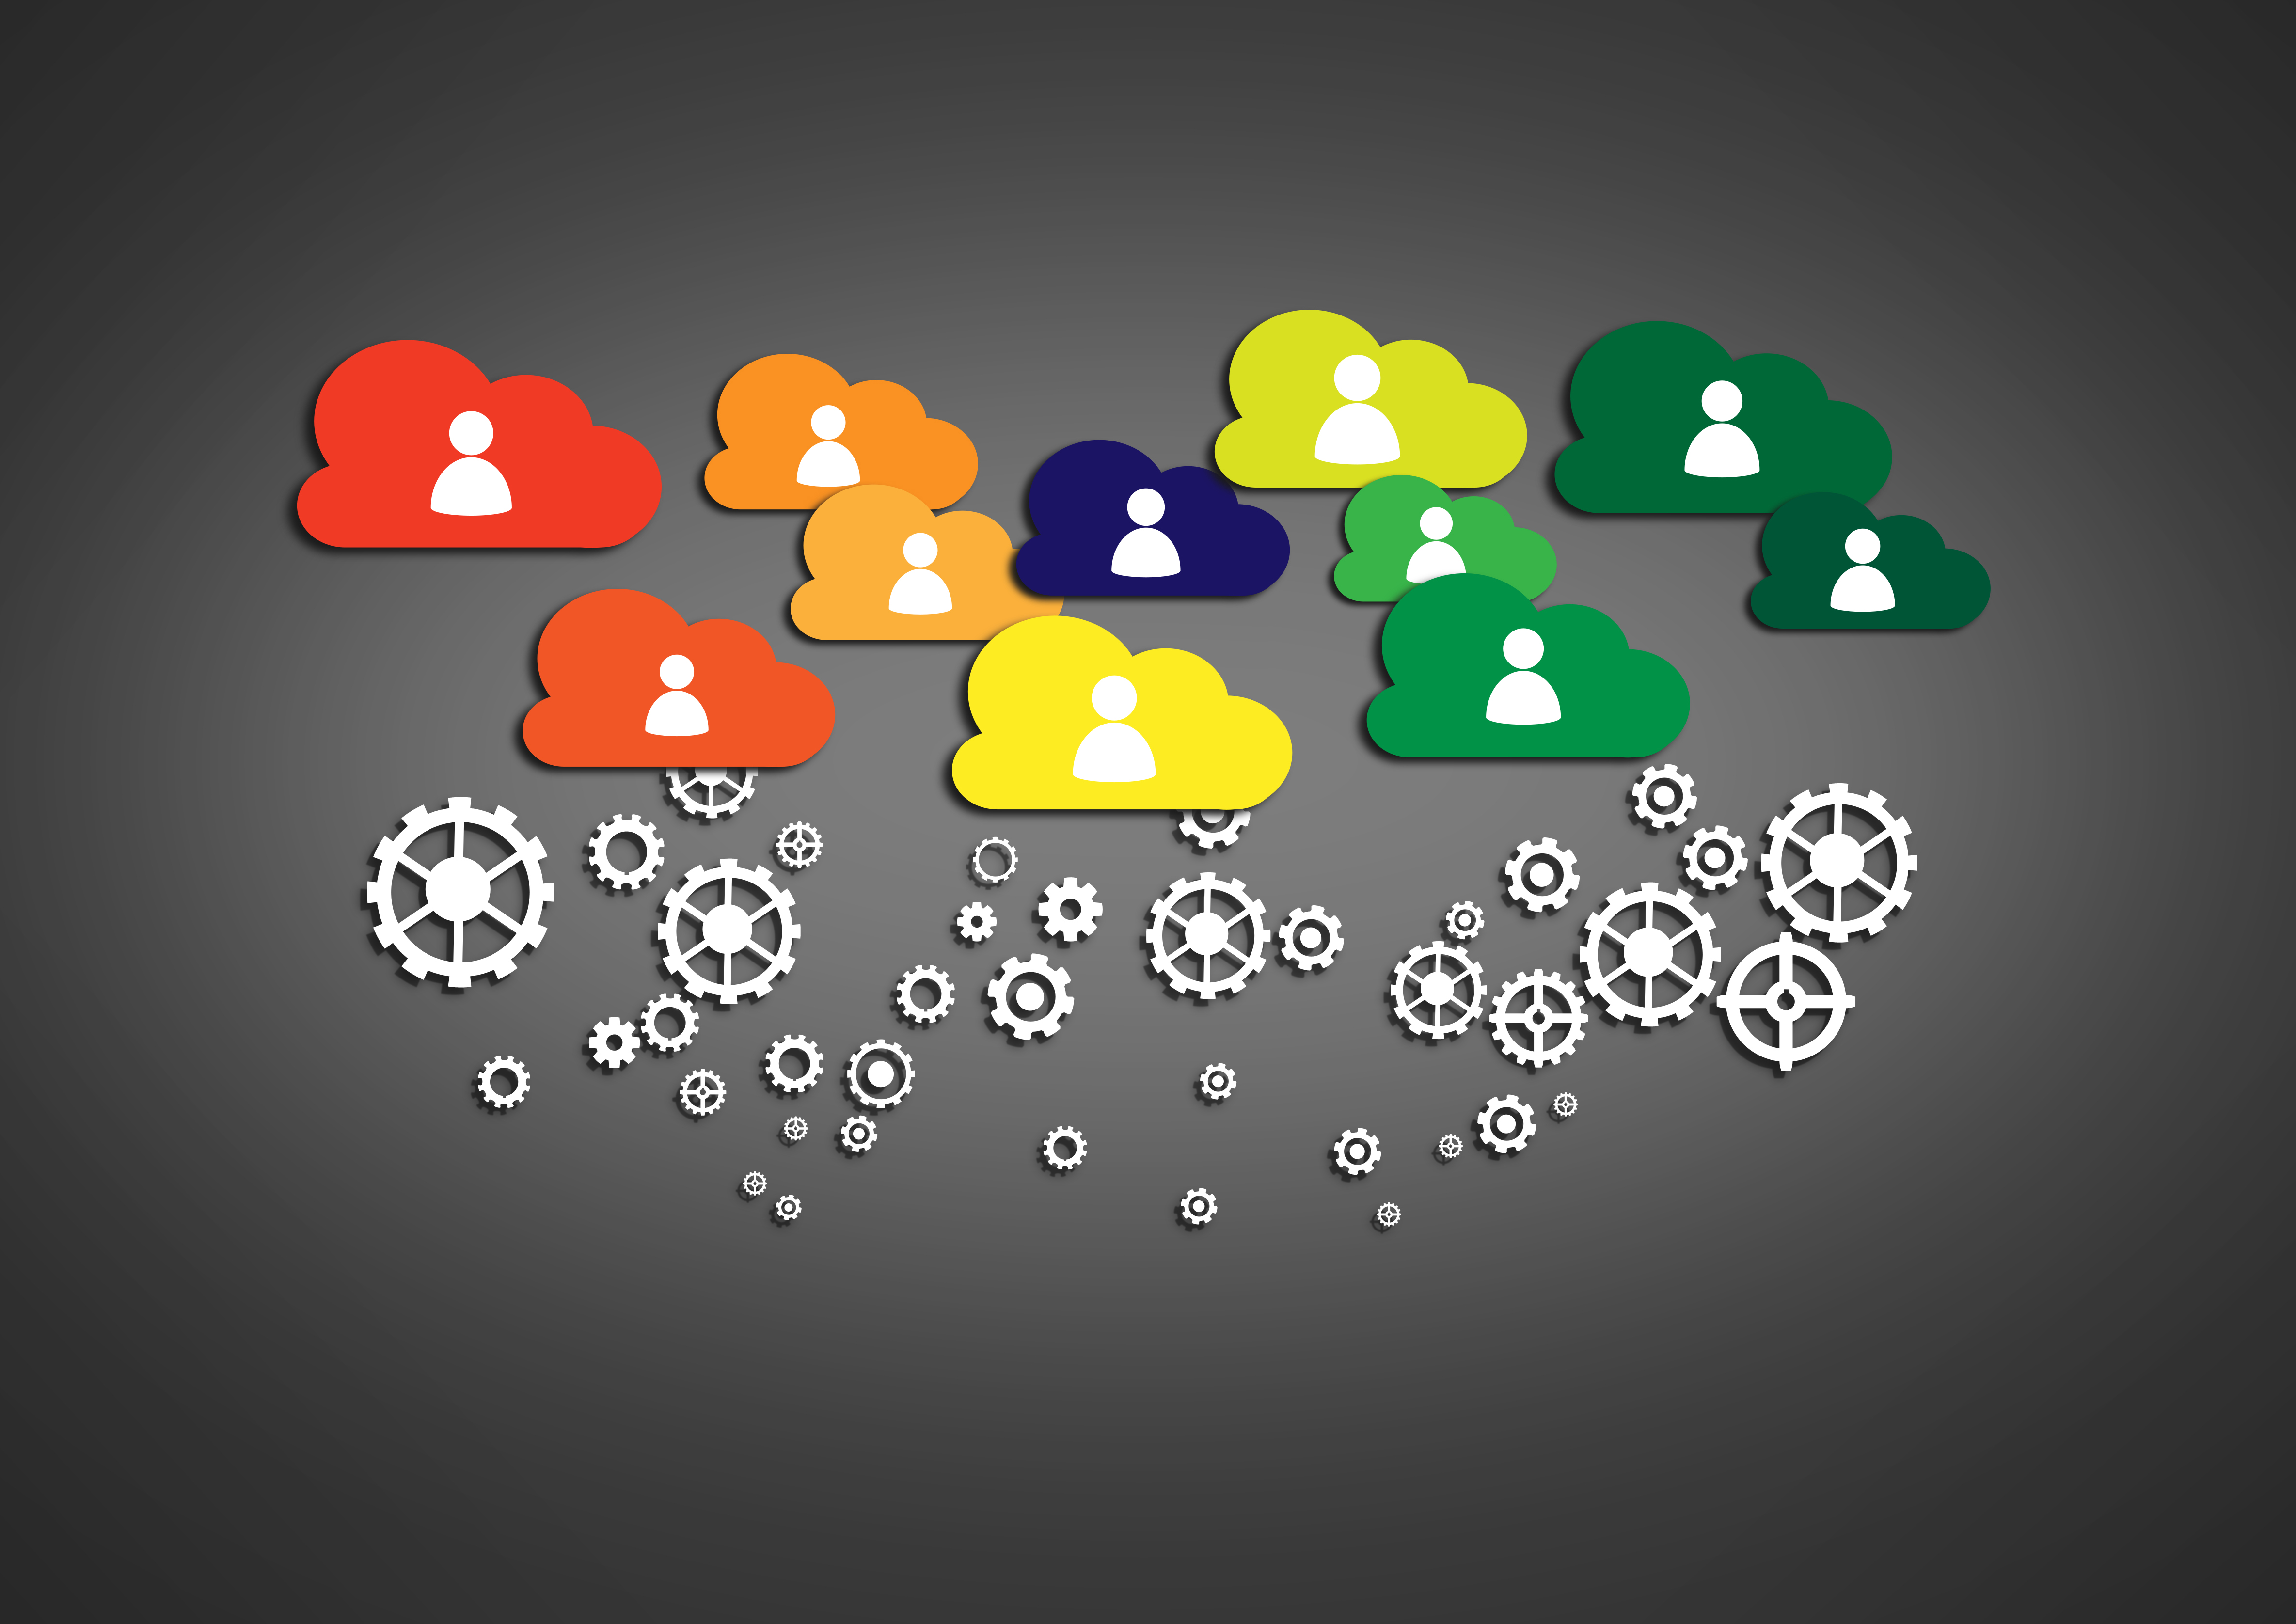 Network concept with cloud technology, Analytics, Networking, Research, Remote, HQ Photo